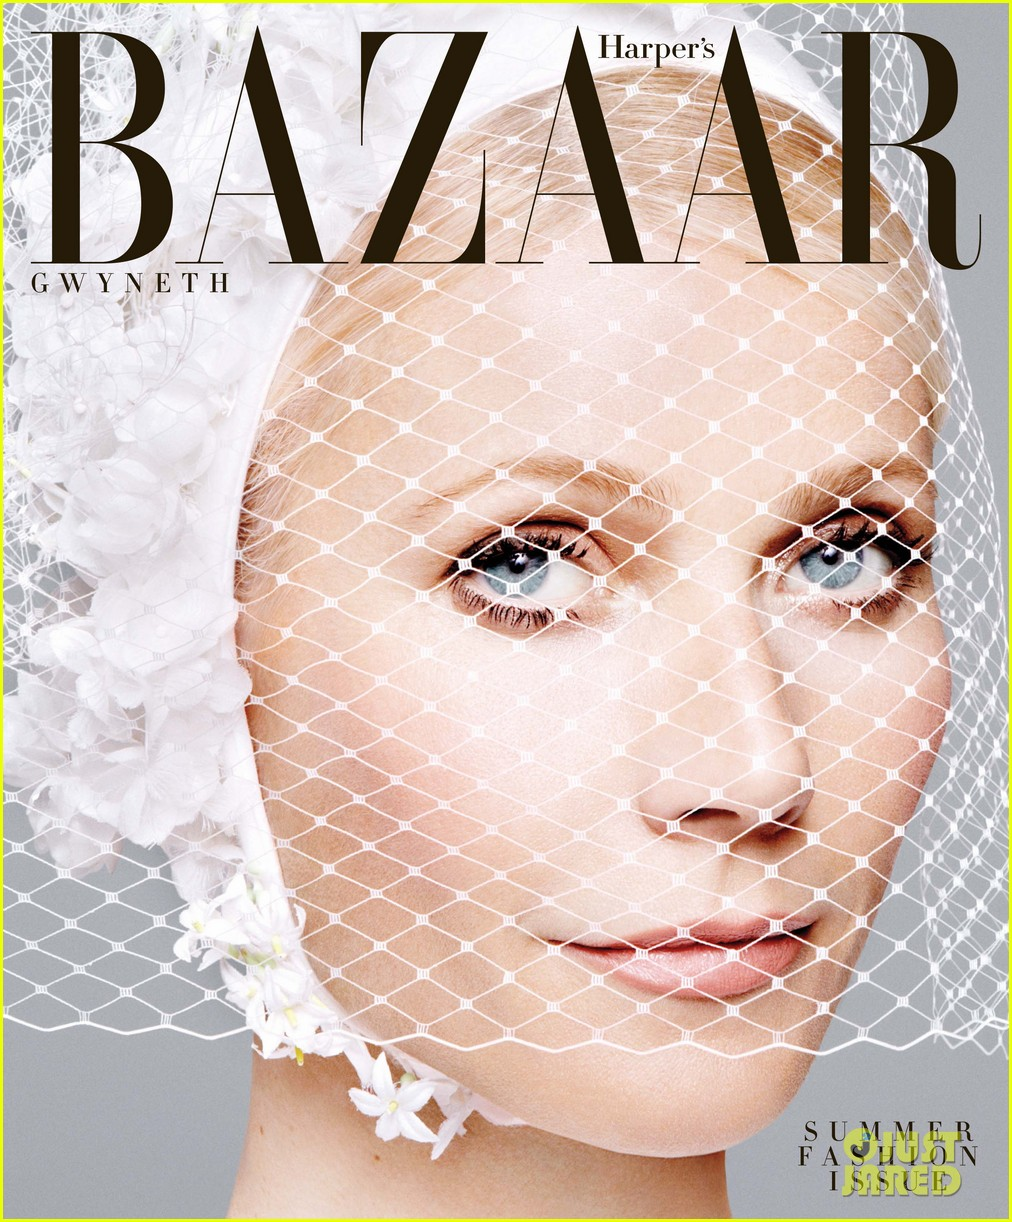 gwyneth paltrow covers harpers bazaar may 2013 032847682